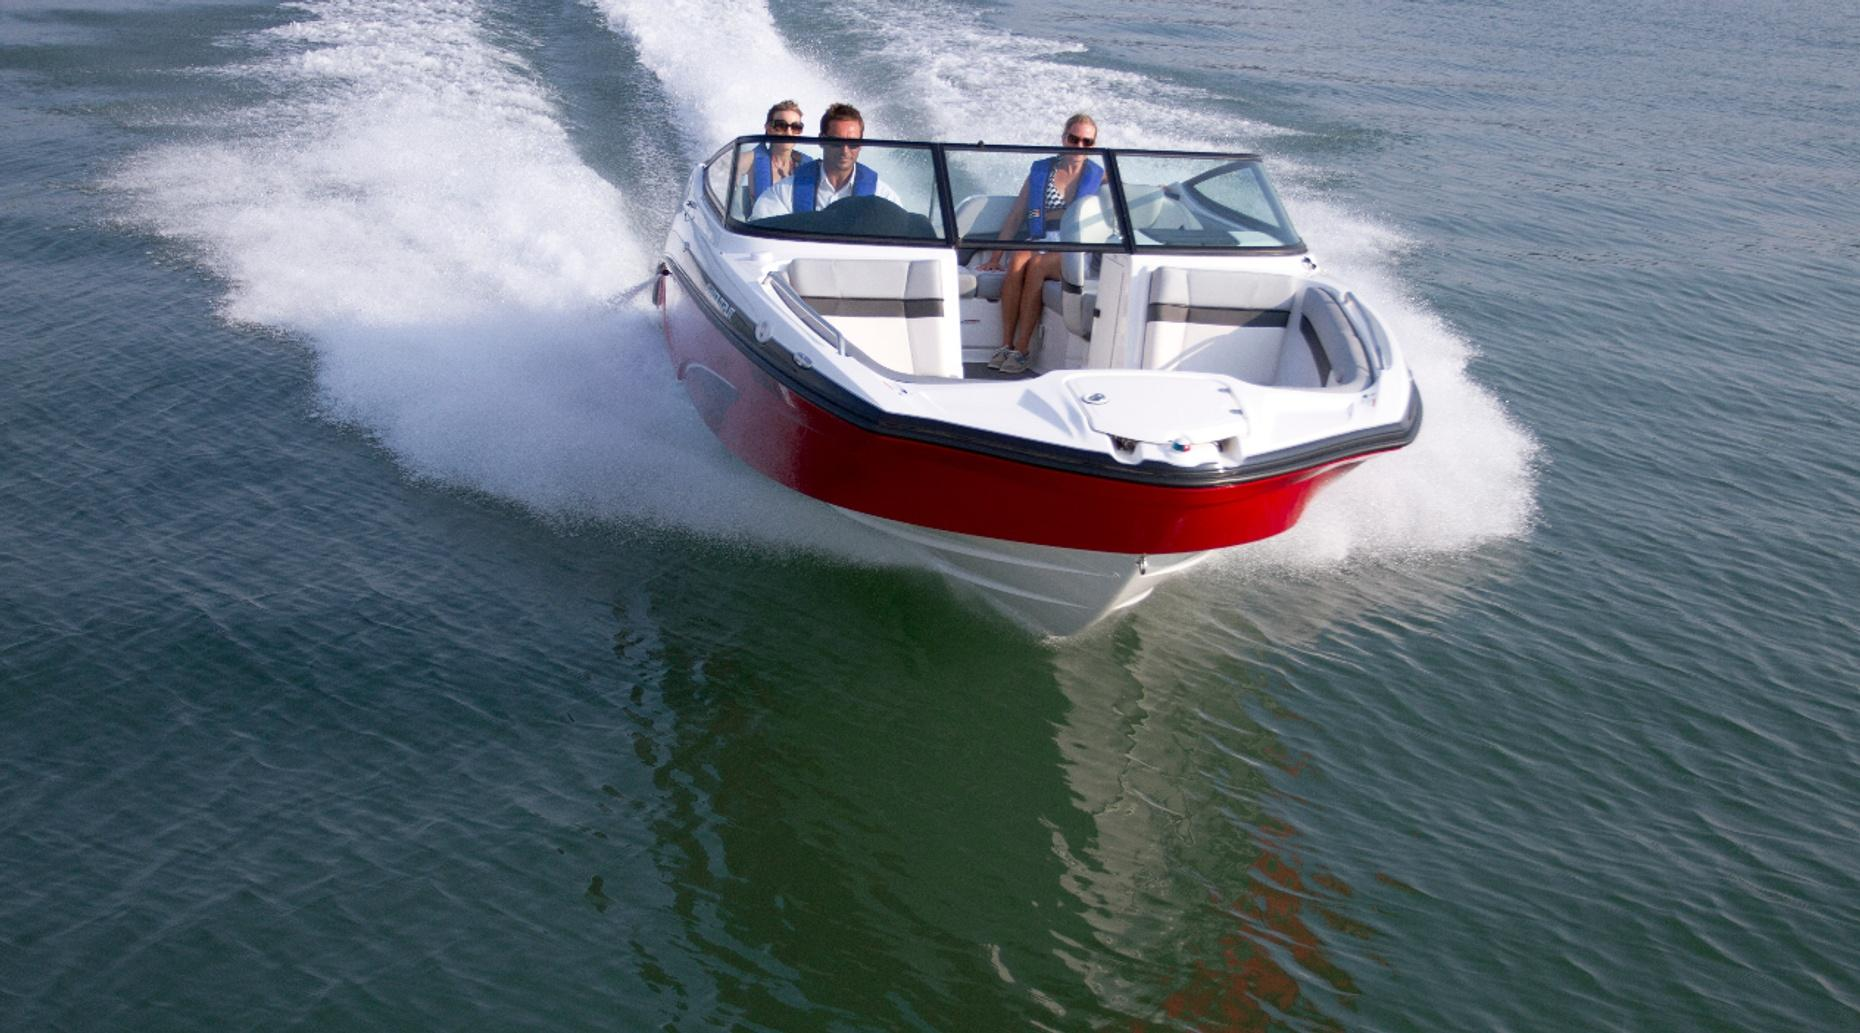 Speedboat Excursion in the Dominican Republic